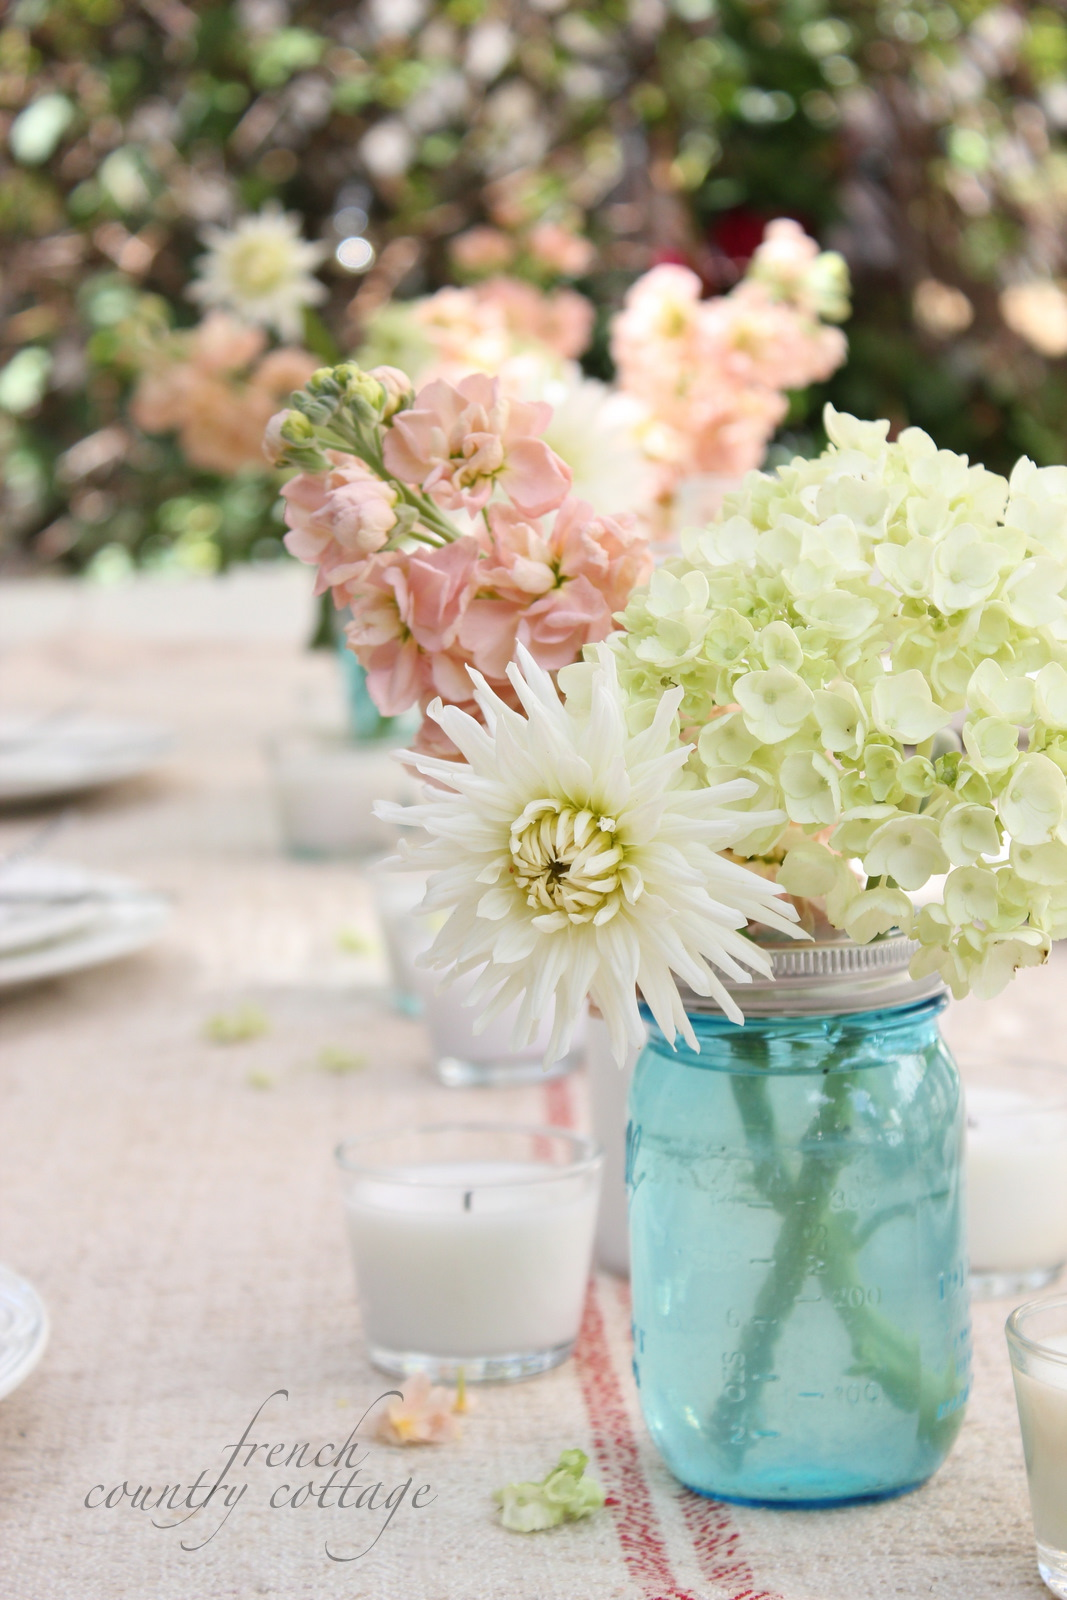 Table Setting In French Summer Table Setting With Blue Mason Jars French Country Cottage